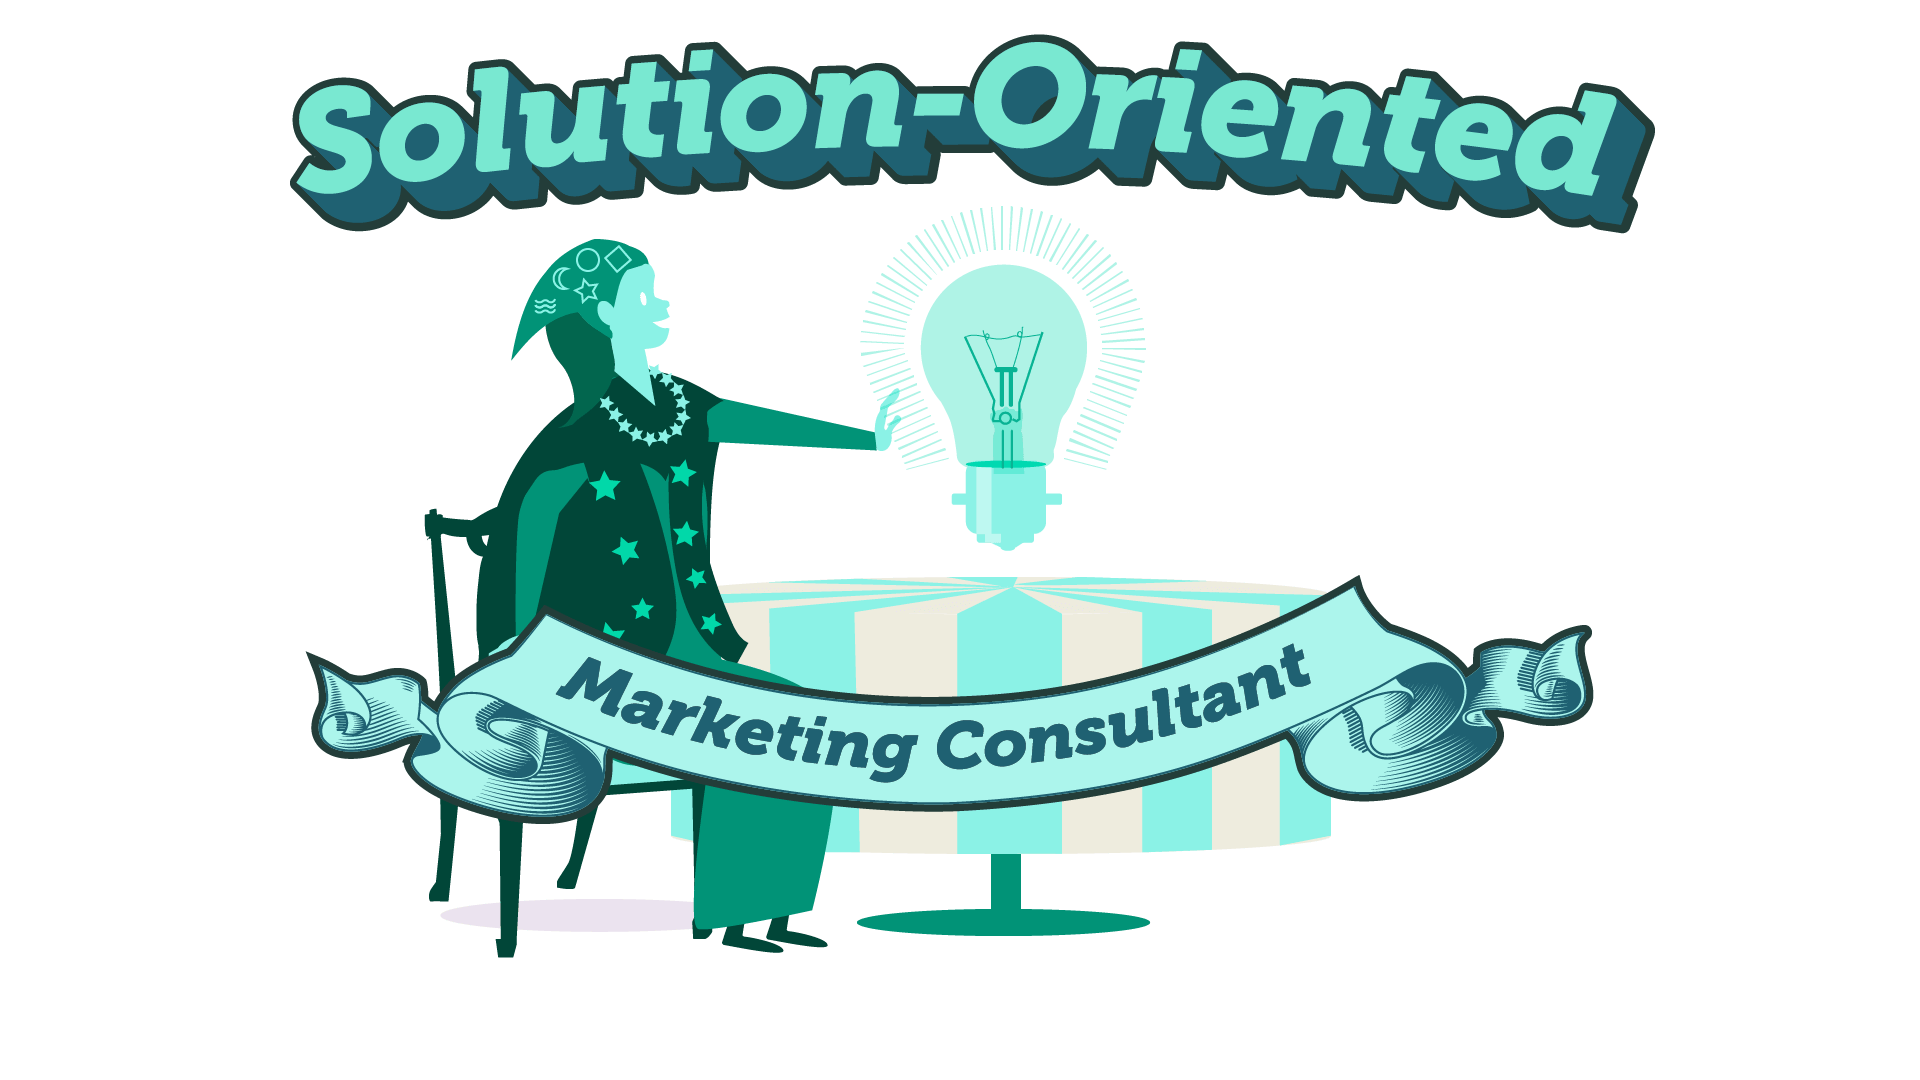 IMAGE: Solution-Oriented Marketing Consultant